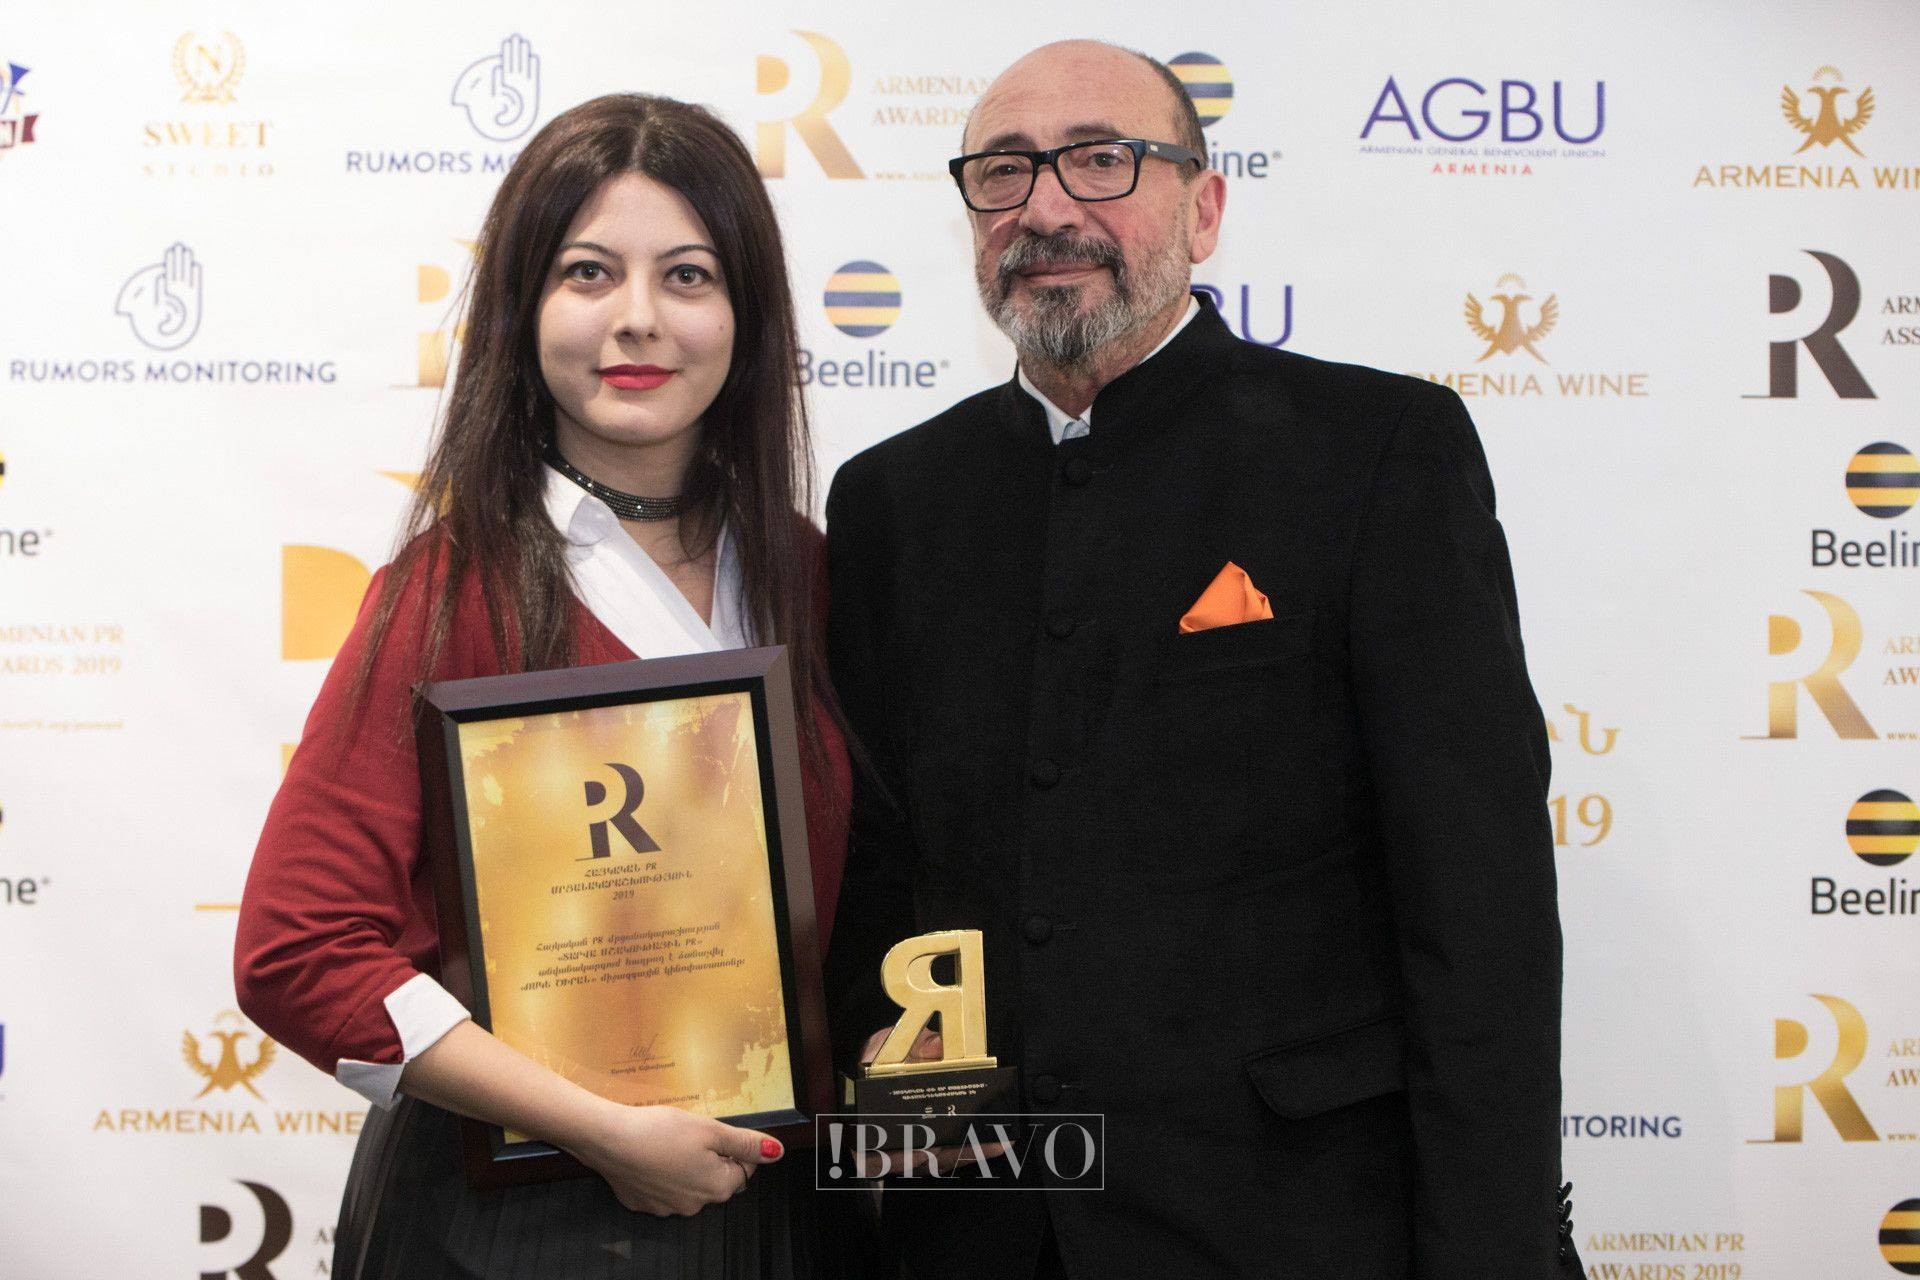 The Golden Apricot is awarded the ՛՛Cultural PR of the Year'' prize